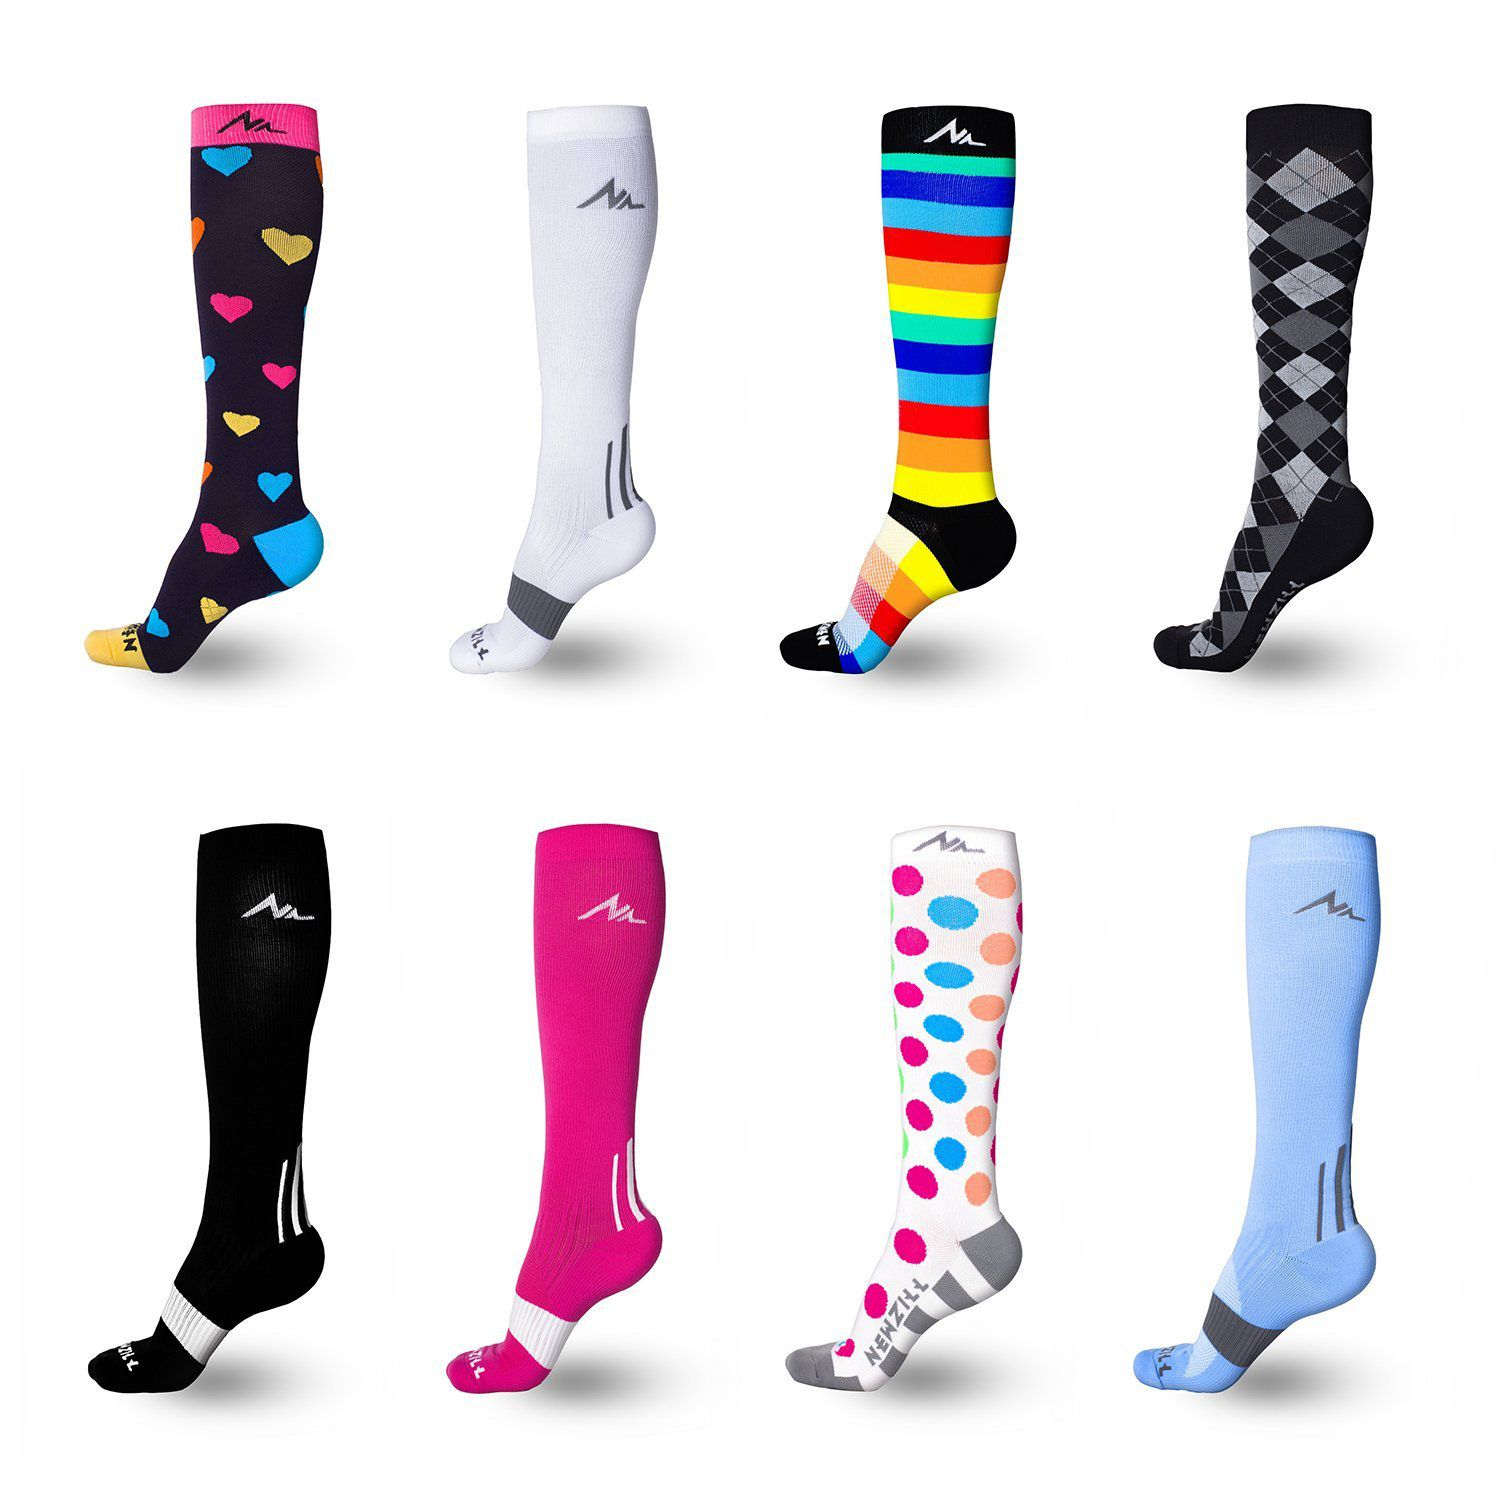 6ef9dd6de1 The 8 Best Airplane Compression Socks of 2019